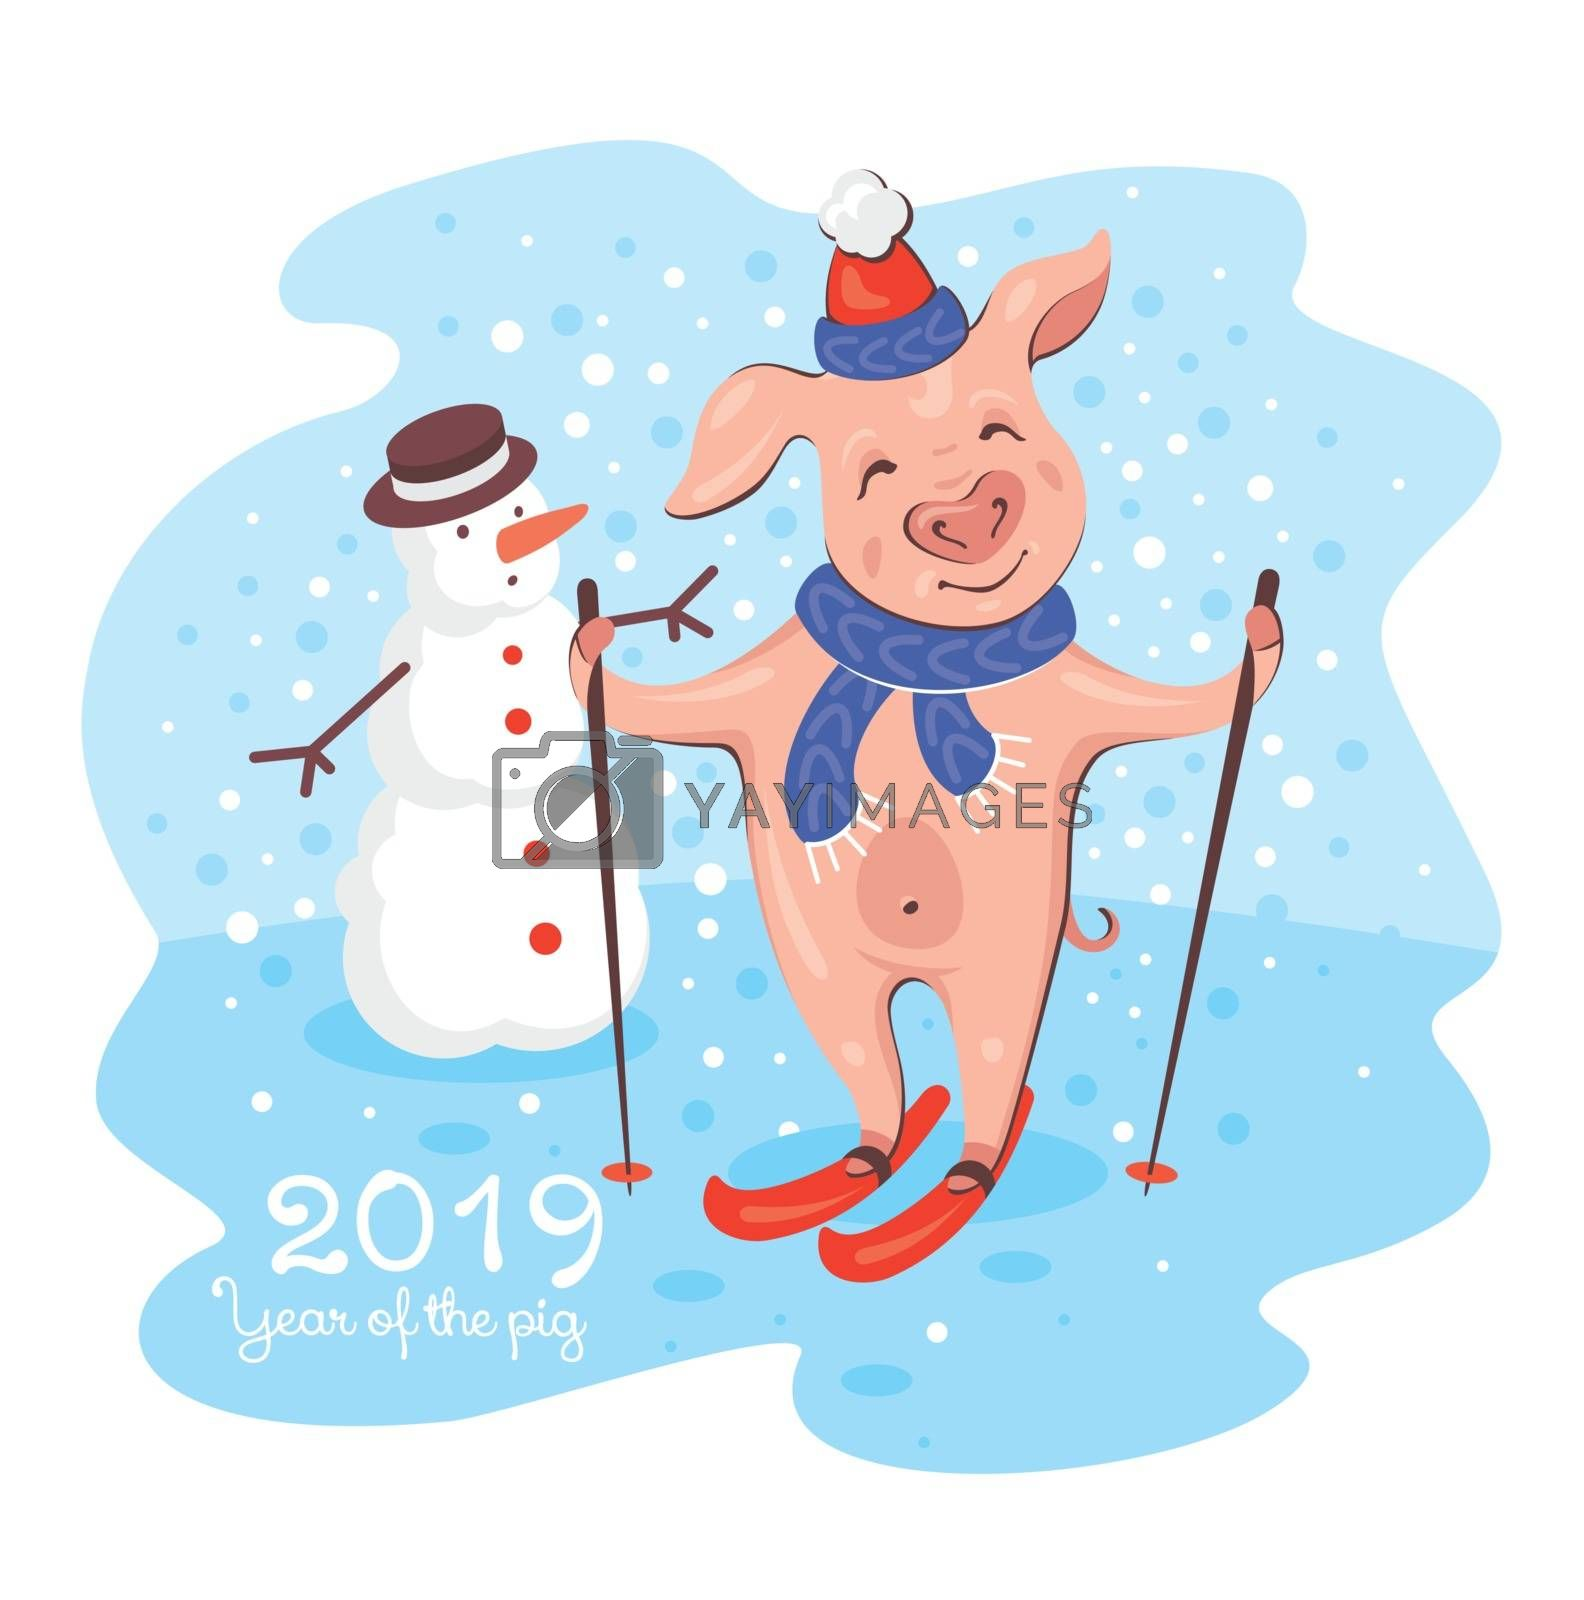 2019 New Year greeting card with pig and snowman. Cute happy young pig skiing with a smile in a snowy day. Vector illustration.